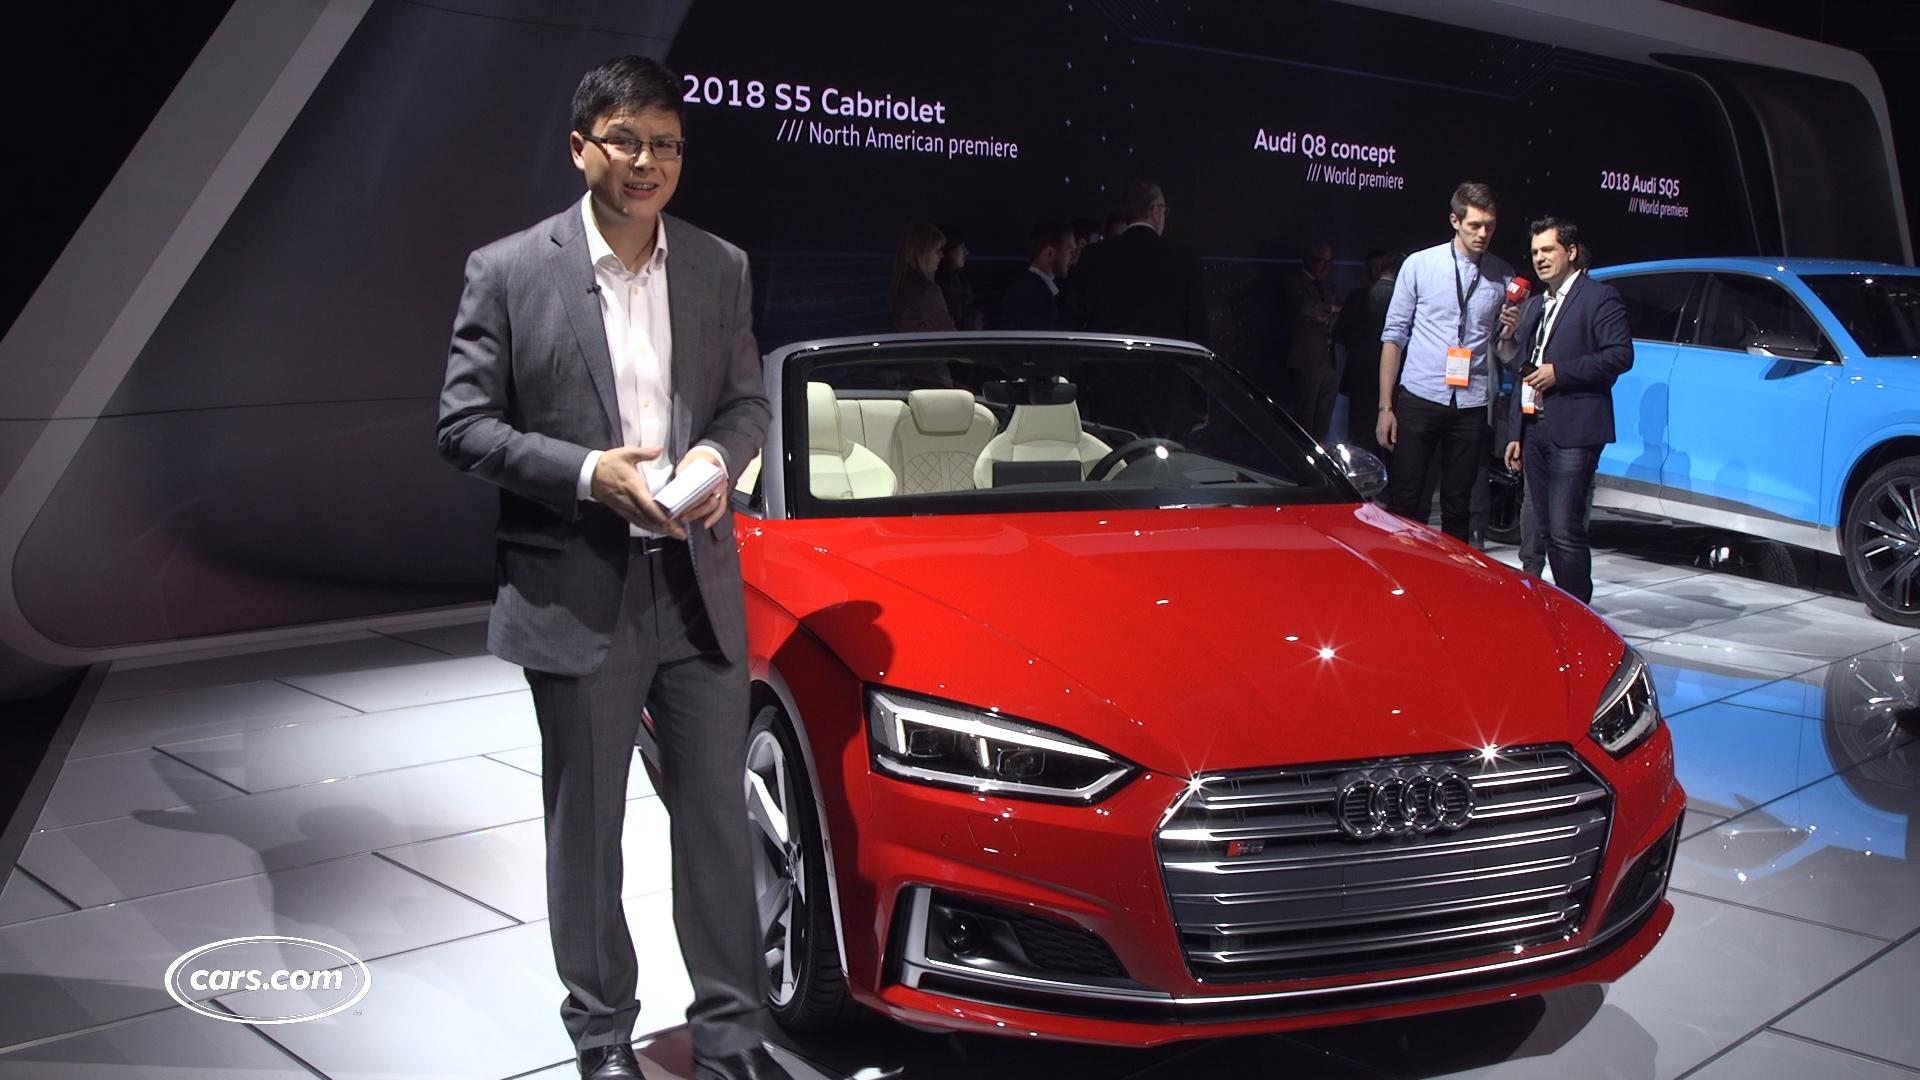 2018 audi a5 and s5 cabriolet preview news. Black Bedroom Furniture Sets. Home Design Ideas